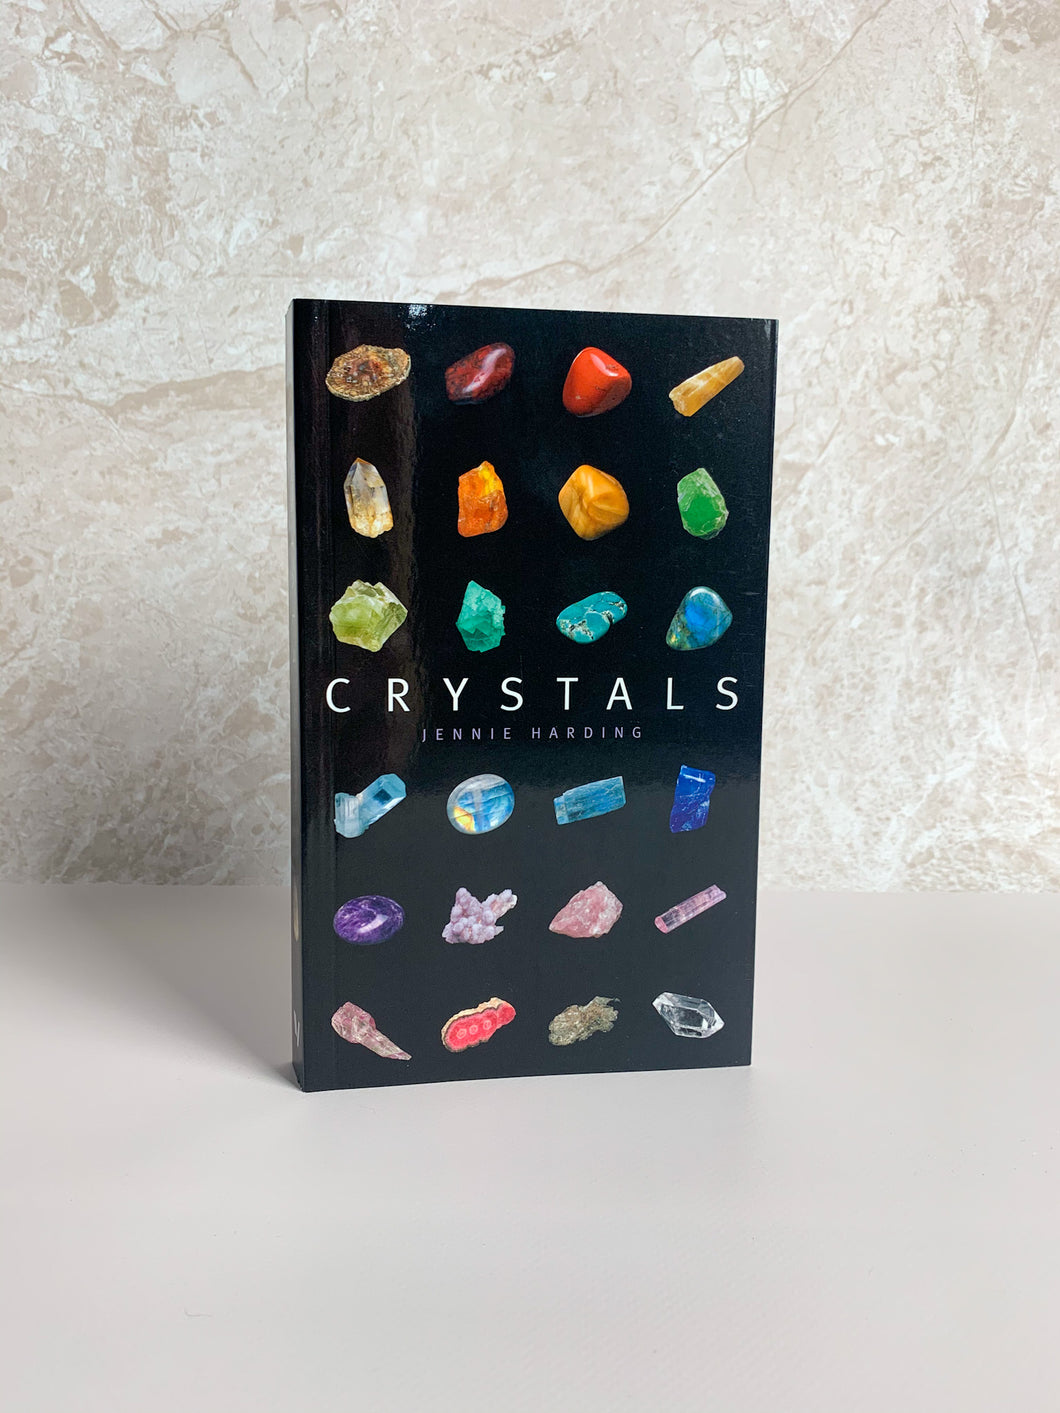 'Crystals' by Jennie Harding